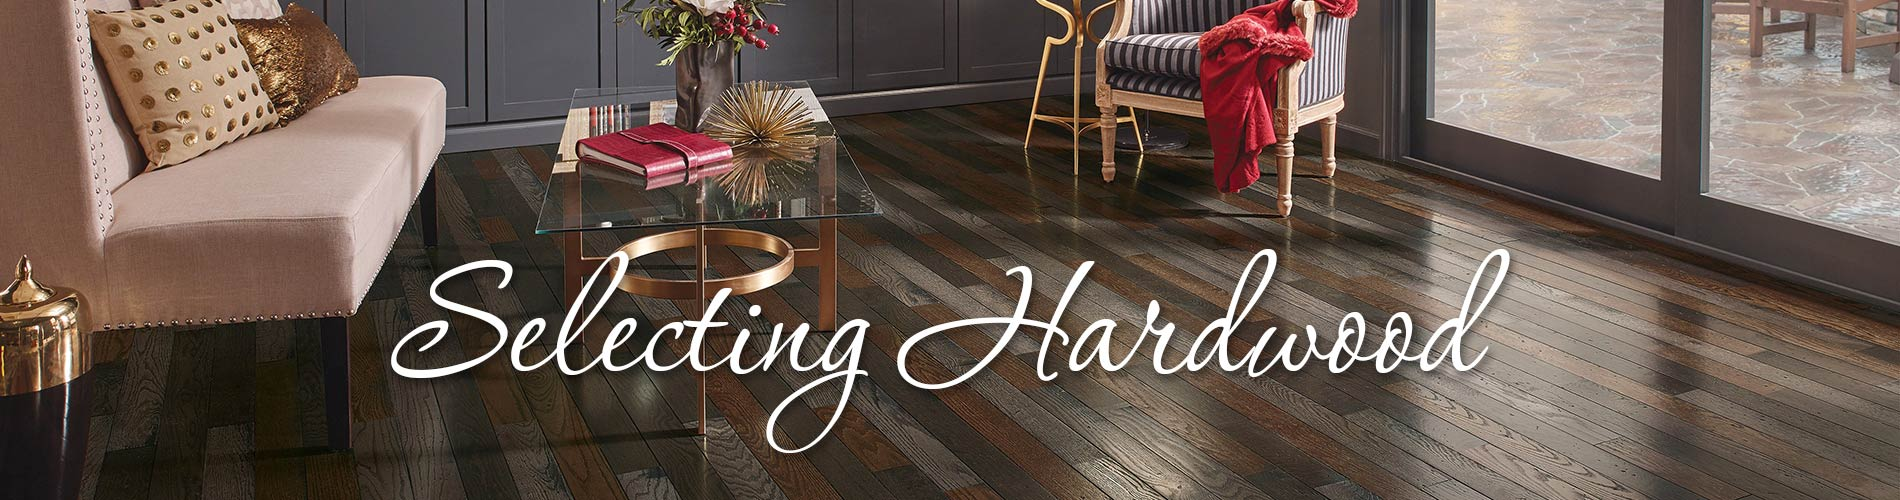 Selecting Hardwood From Floors To Go North Little Rock